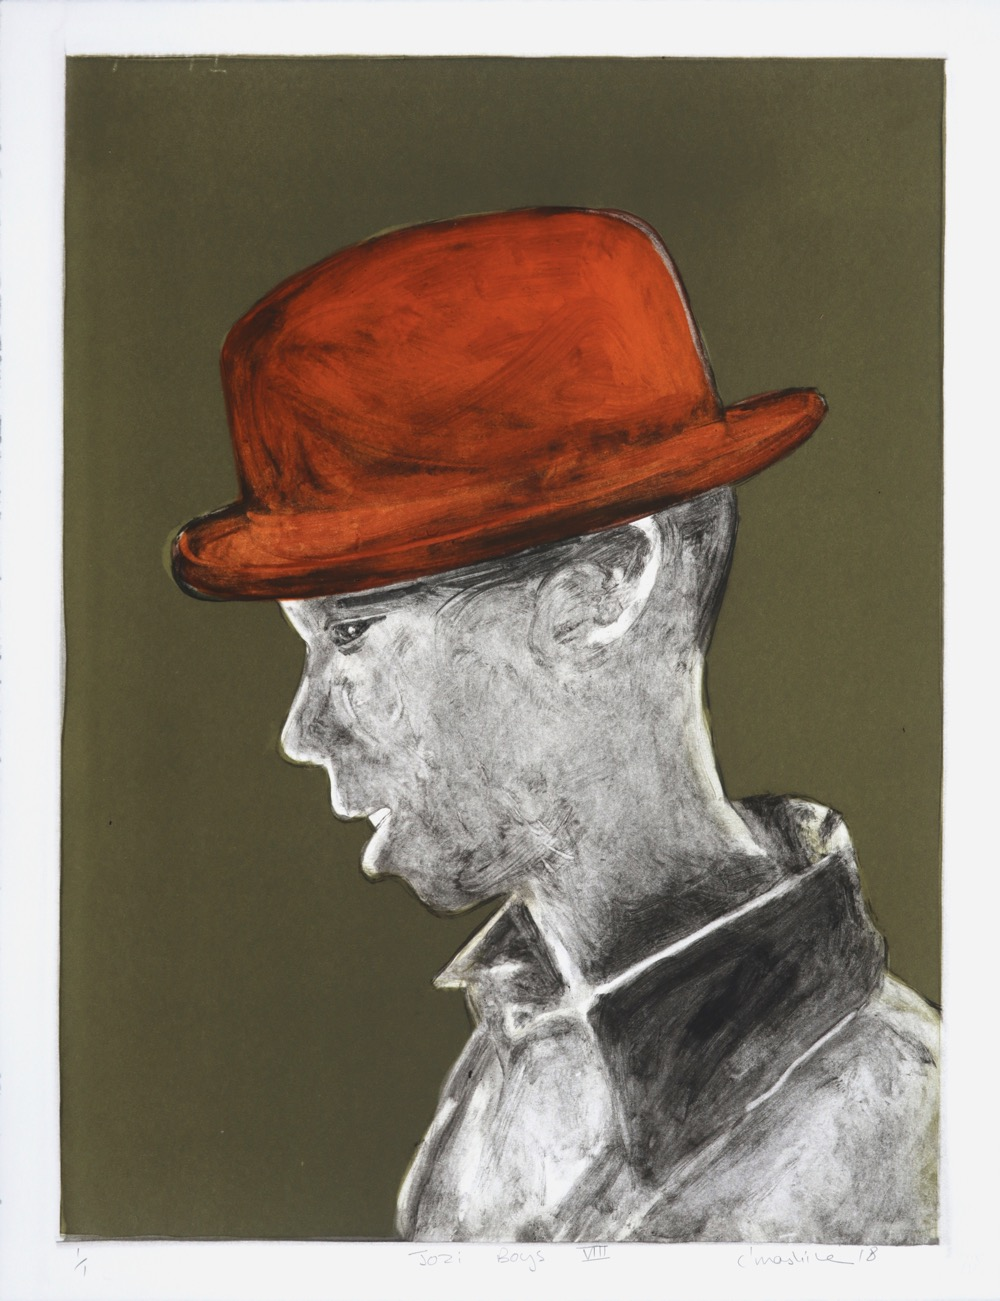 Profile of a young man in a trilby hat wearing a collared shirt.